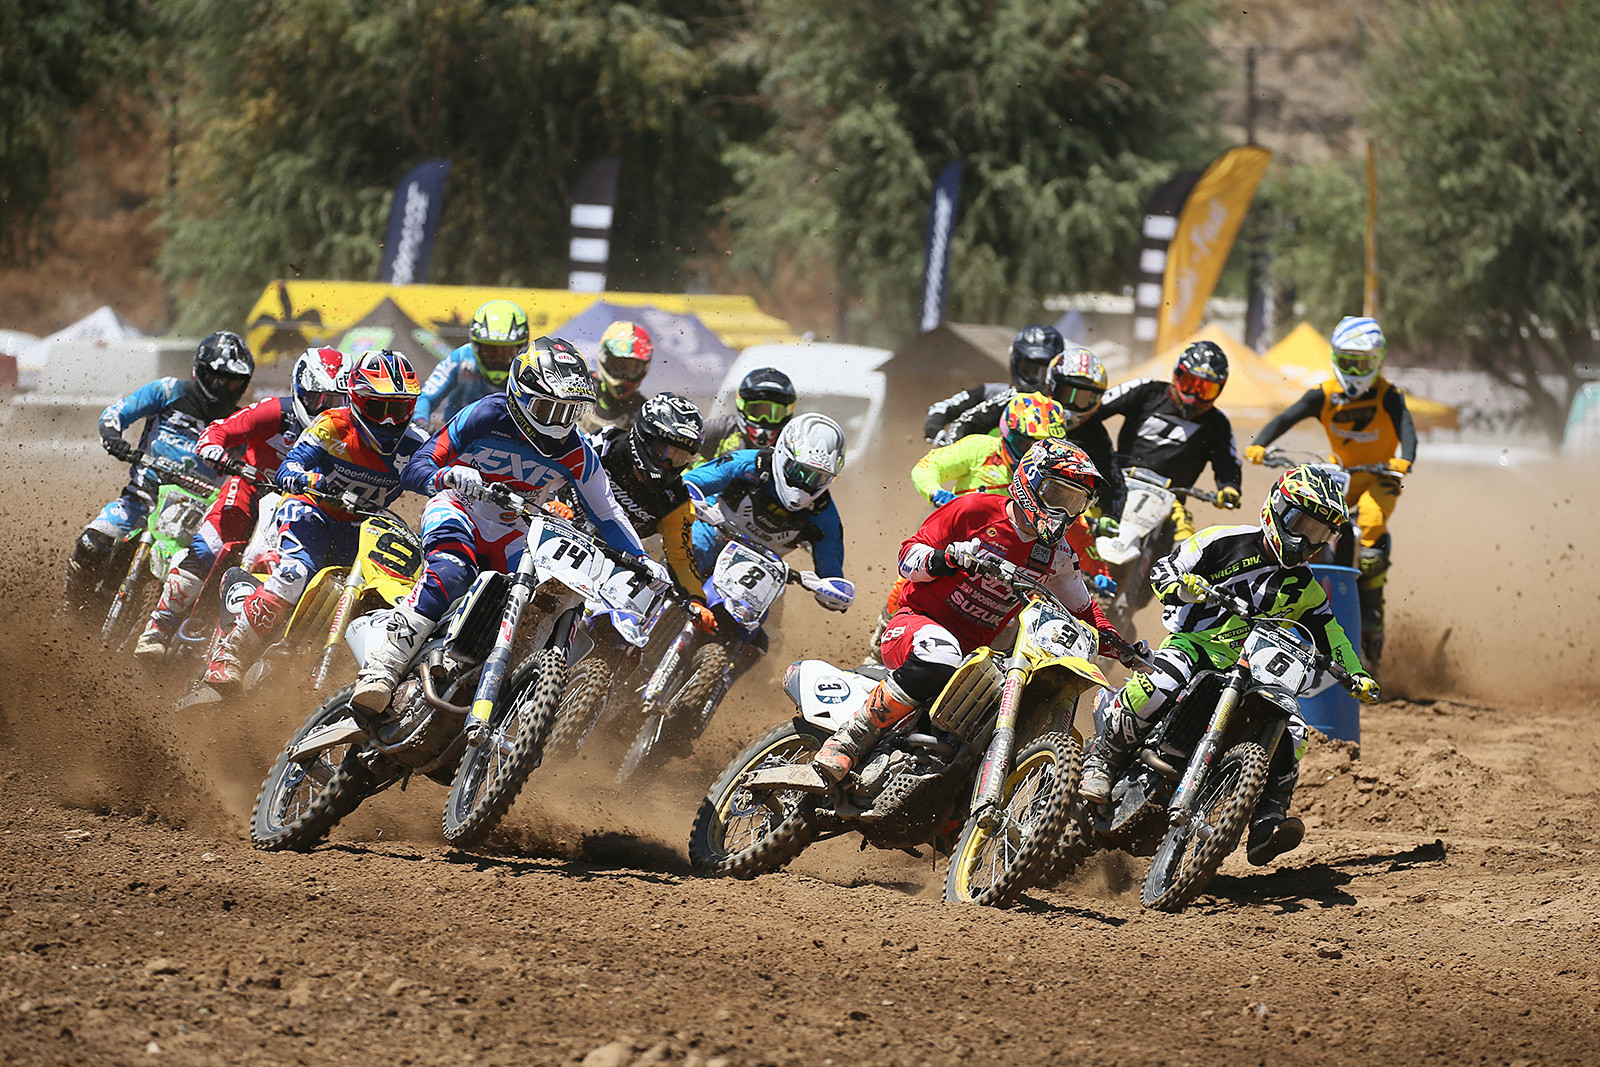 The start of the first pro moto had Mike Brown, Matt Bisceglia, and Sean Lipanovich out front.